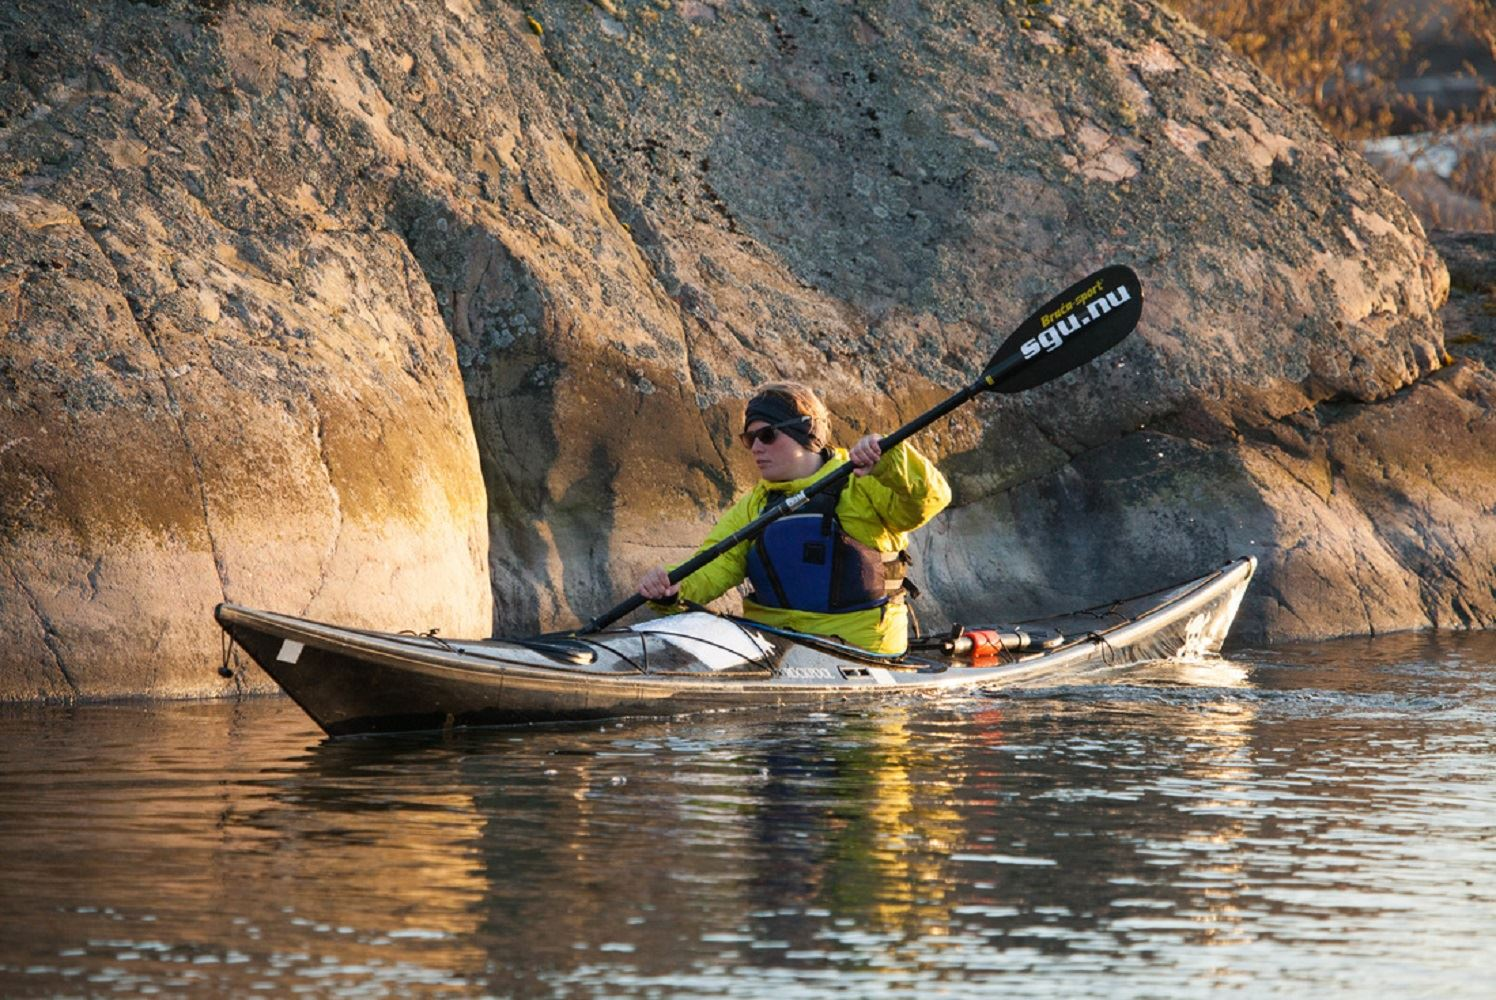 Paddelboden - Renting single kayak 2 hours